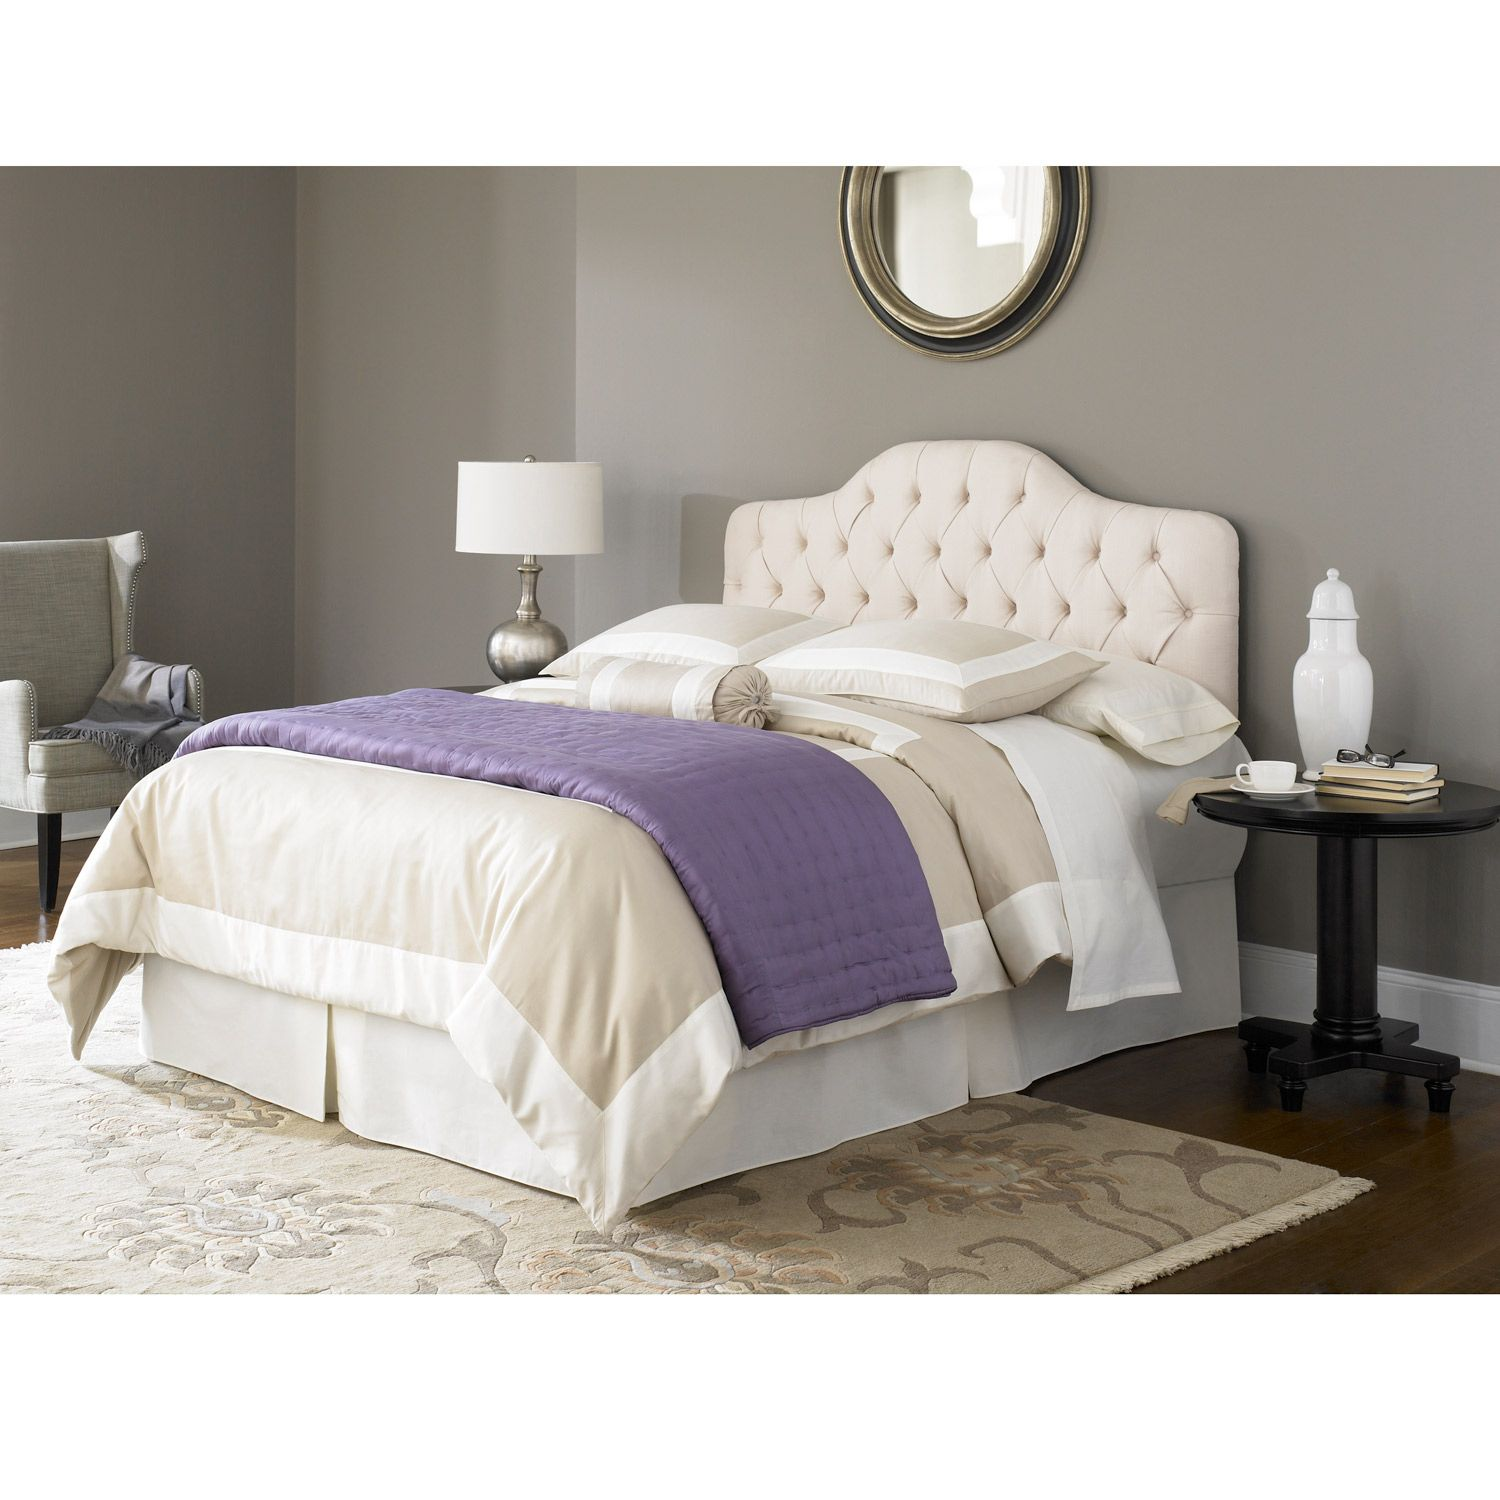 add a classic touch to your bedroom with this ivory upholstered